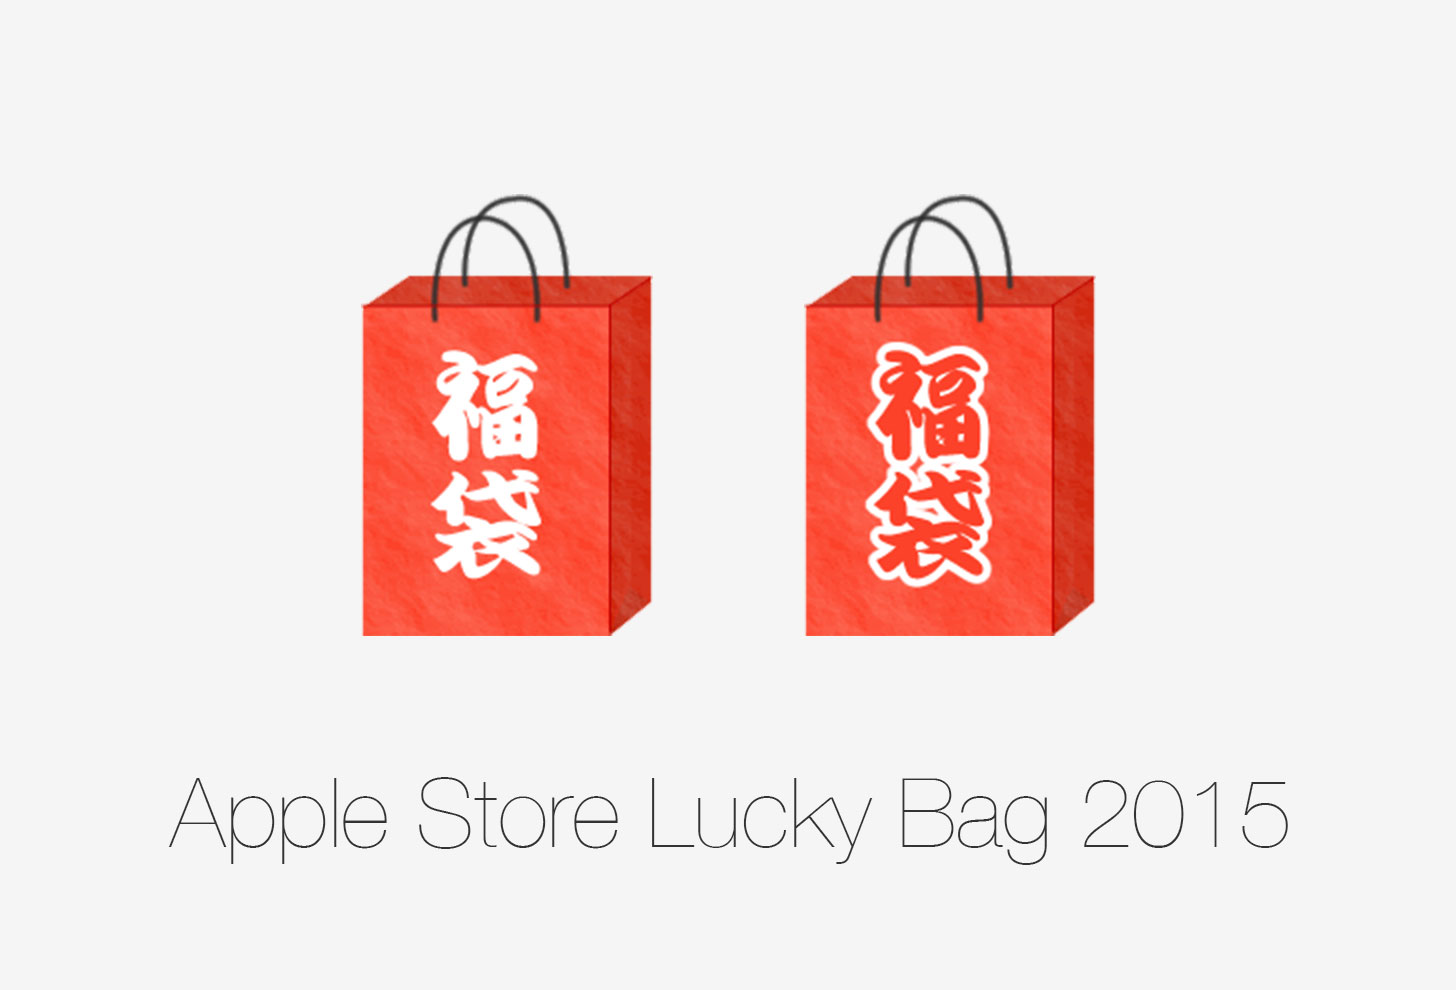 Apple store lucky bag 2015